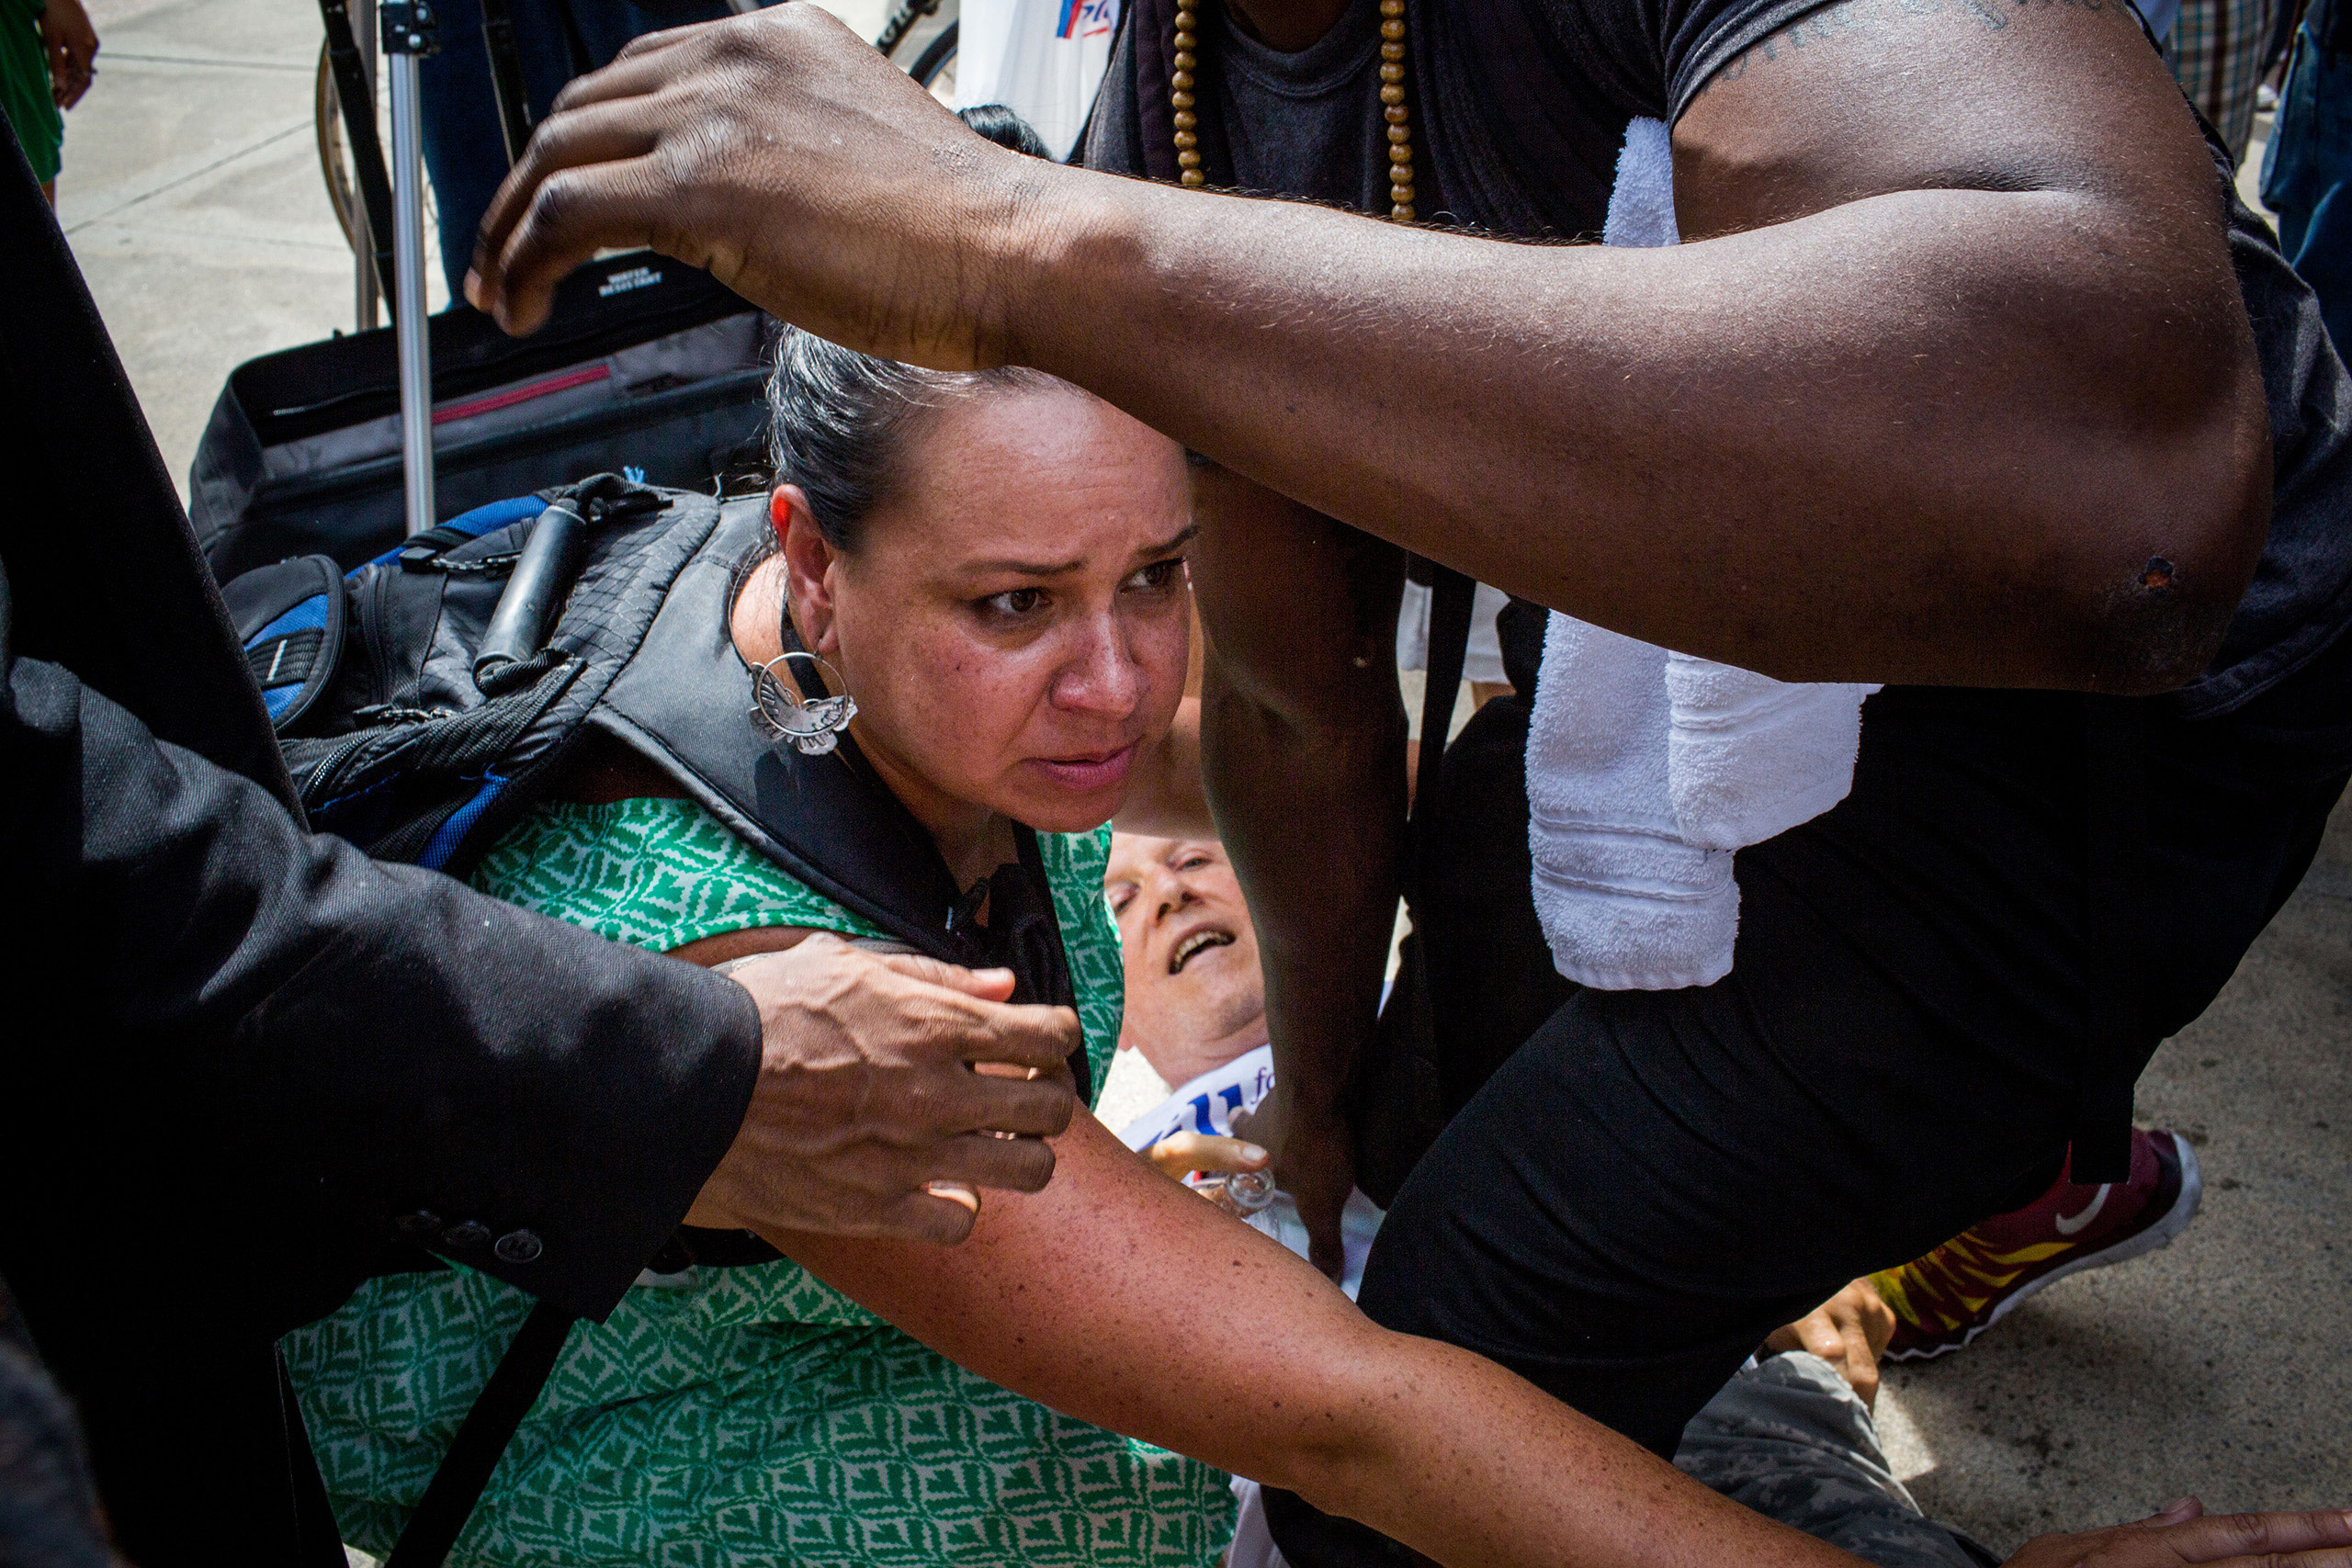 A fight between protestors at City Hall in Philadelphia to watch speaker Jill Stein and protest the Democratic National Convention at the Wells Fargo Center on July 26, 2016.From  The 82 Most Unforgettable Photos From the Election